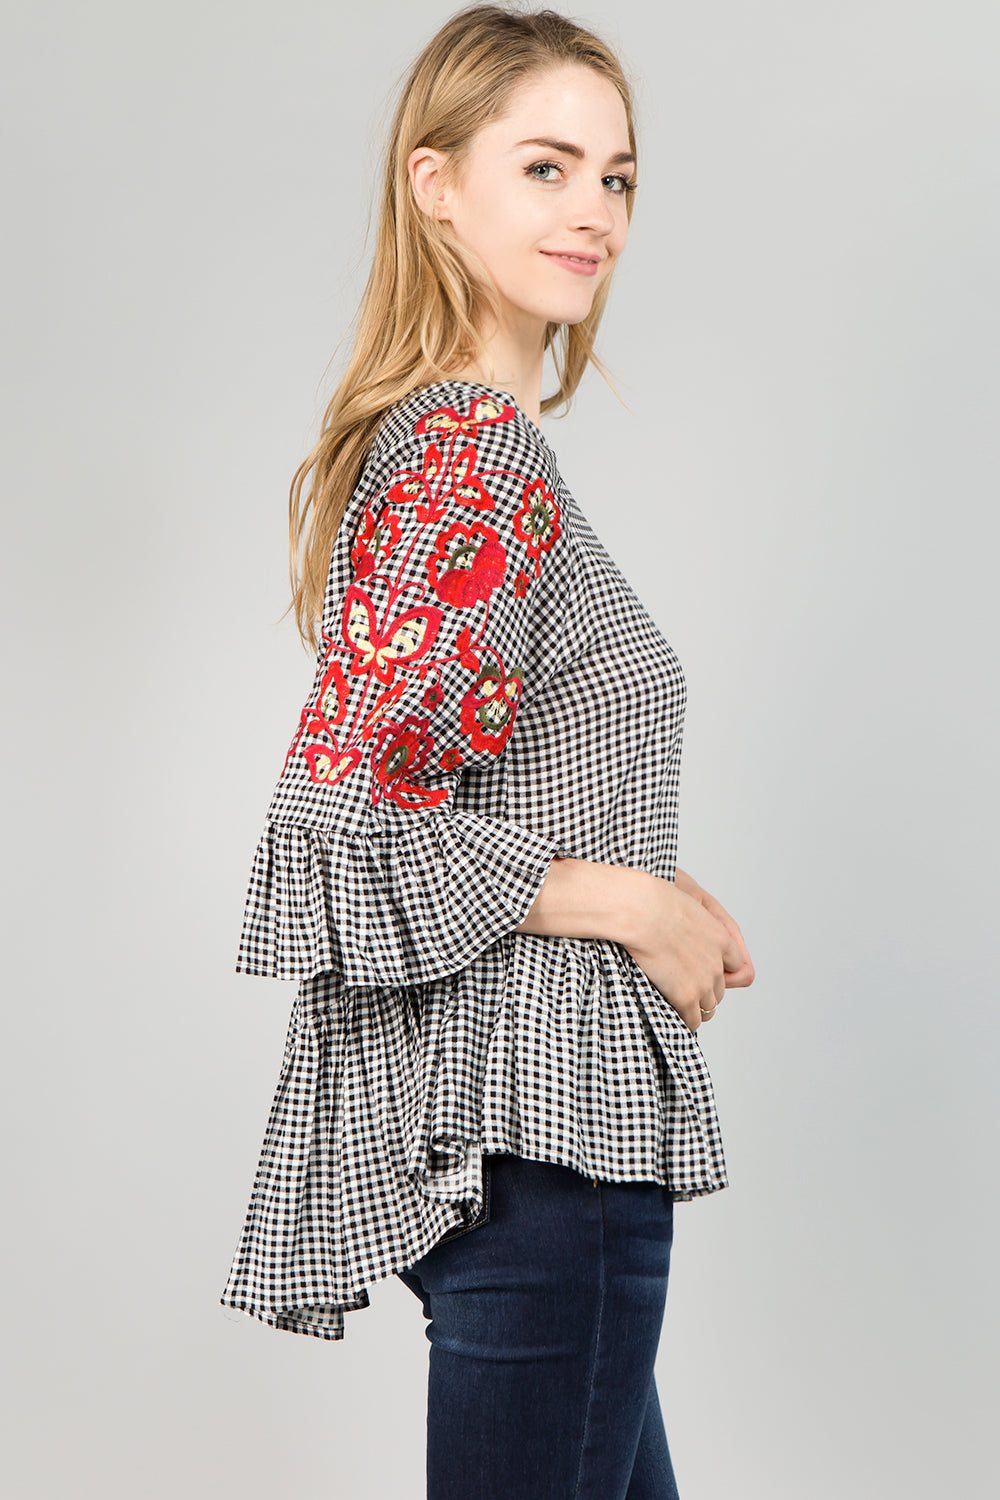 T2233 Floral Embroidery Gingham Top